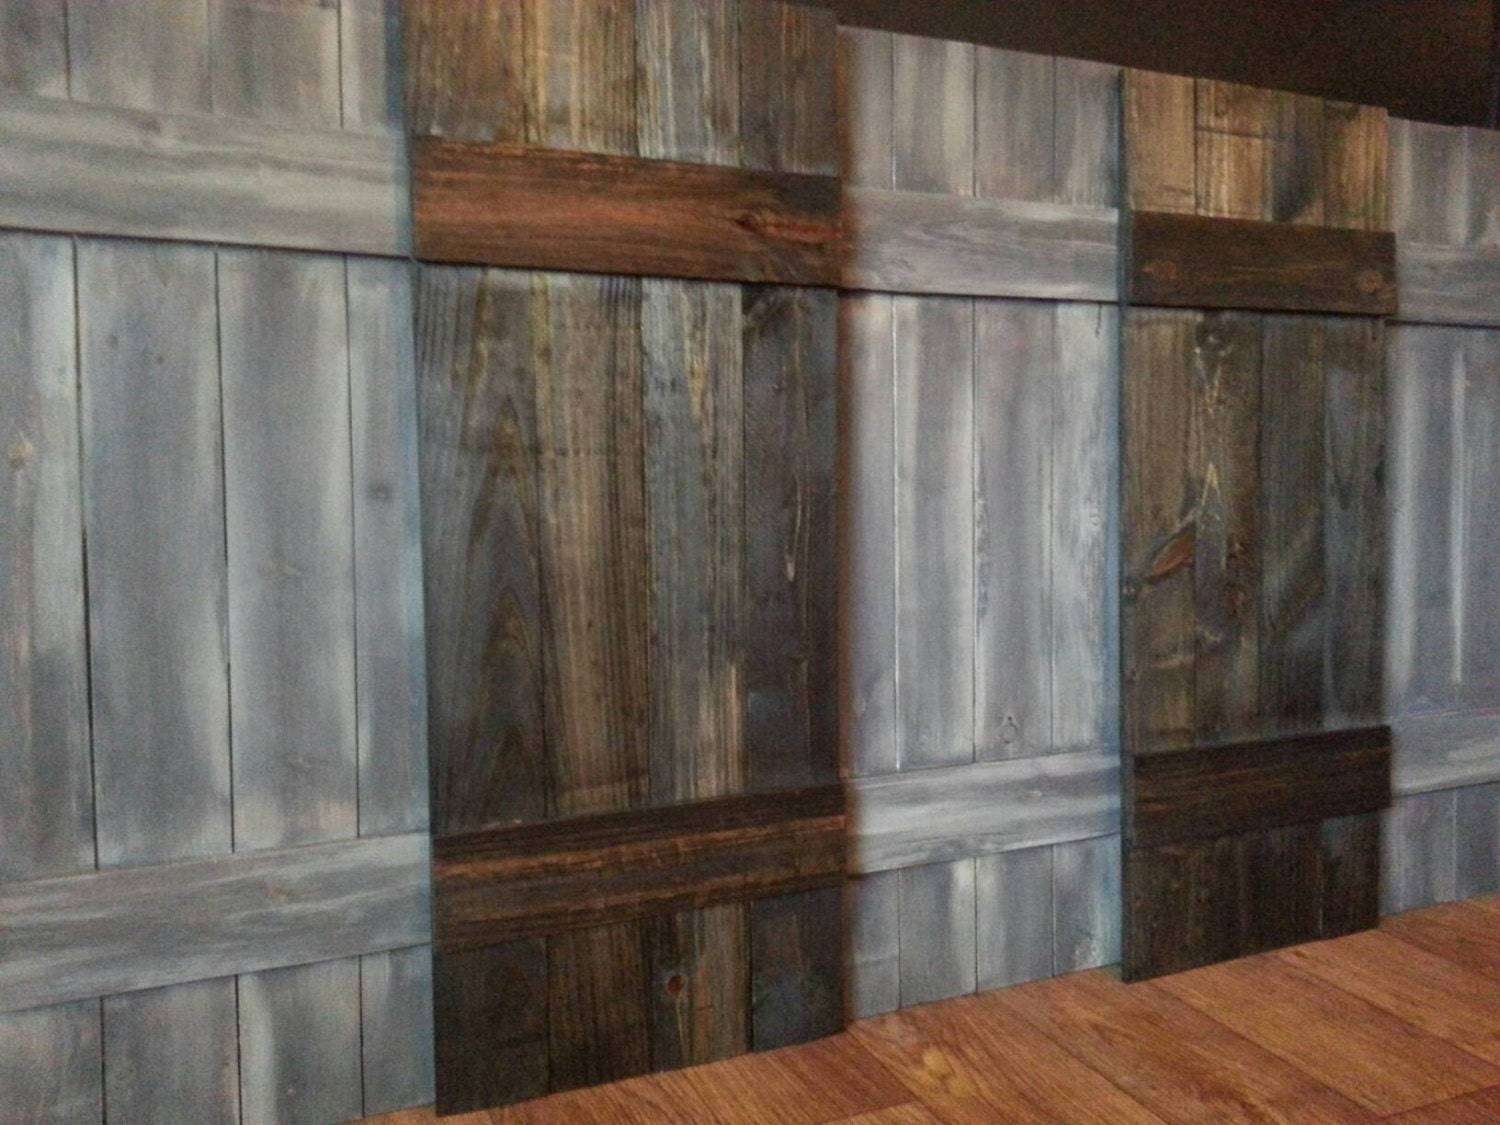 Rustic wood shutters primitive shutters decorative shutters wooden shutters wall decor for Decorative interior wall shutters